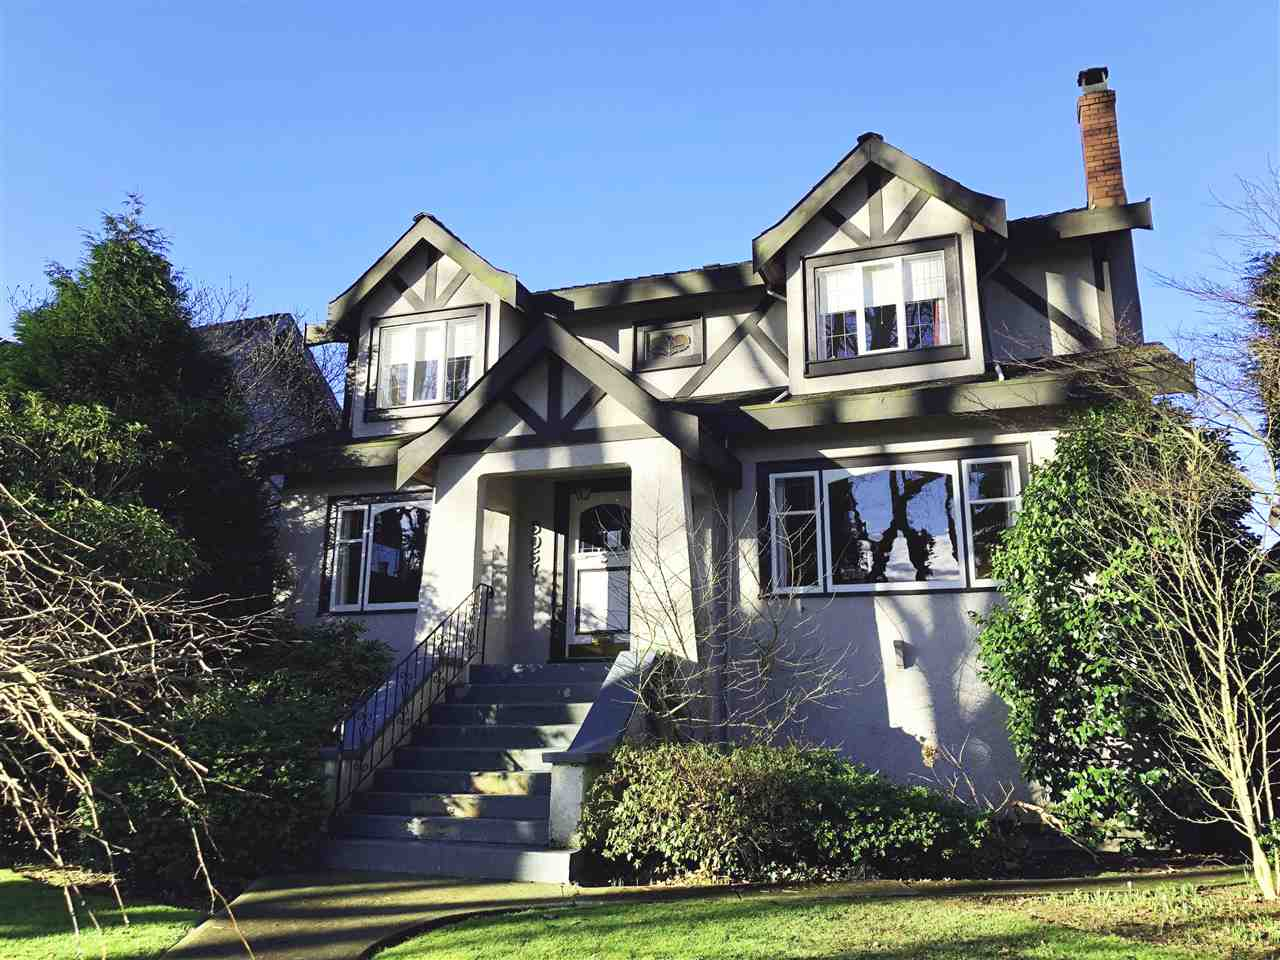 This home is located in 1 of the most prime locations on the Westside of Vancouver w/close proximity to Mackenzie heights shops and local private schools. 50 X 130.25 lot allows for plenty of space to spread out. It has a traditional layout w/ cross hall floorplan feat. formal living, dining room, kitchen & den also powder room on the main. Plenty of original charm including refinished oak-inlay floors, coved ceilings an overall feeling of warmth when you enter the home. Upstairs has 3 spacious bedrooms all w/ vaulted ceilings & 2 full baths including an ensuite in the oversized master bedroom. Downstairs feat. a great rec room & 2 guest rooms and lots of storage. Backyard has a nicely manicured English garden & a 2 car garage. Houses on this street rarely come up for sale, don't miss it!